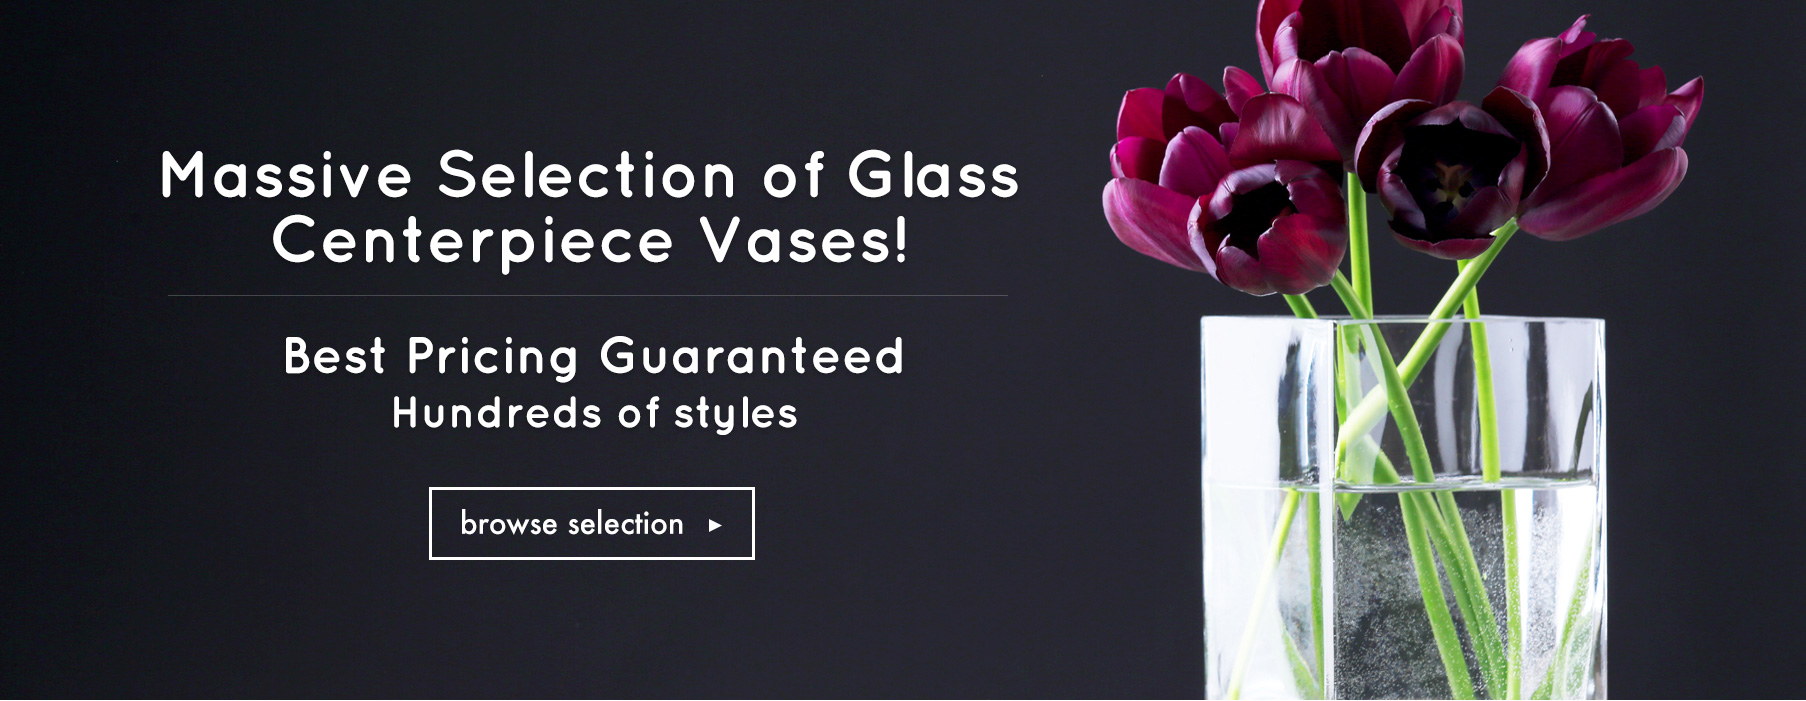 Leading Distributor of Floral and Event Supplies, Glass Vases ...